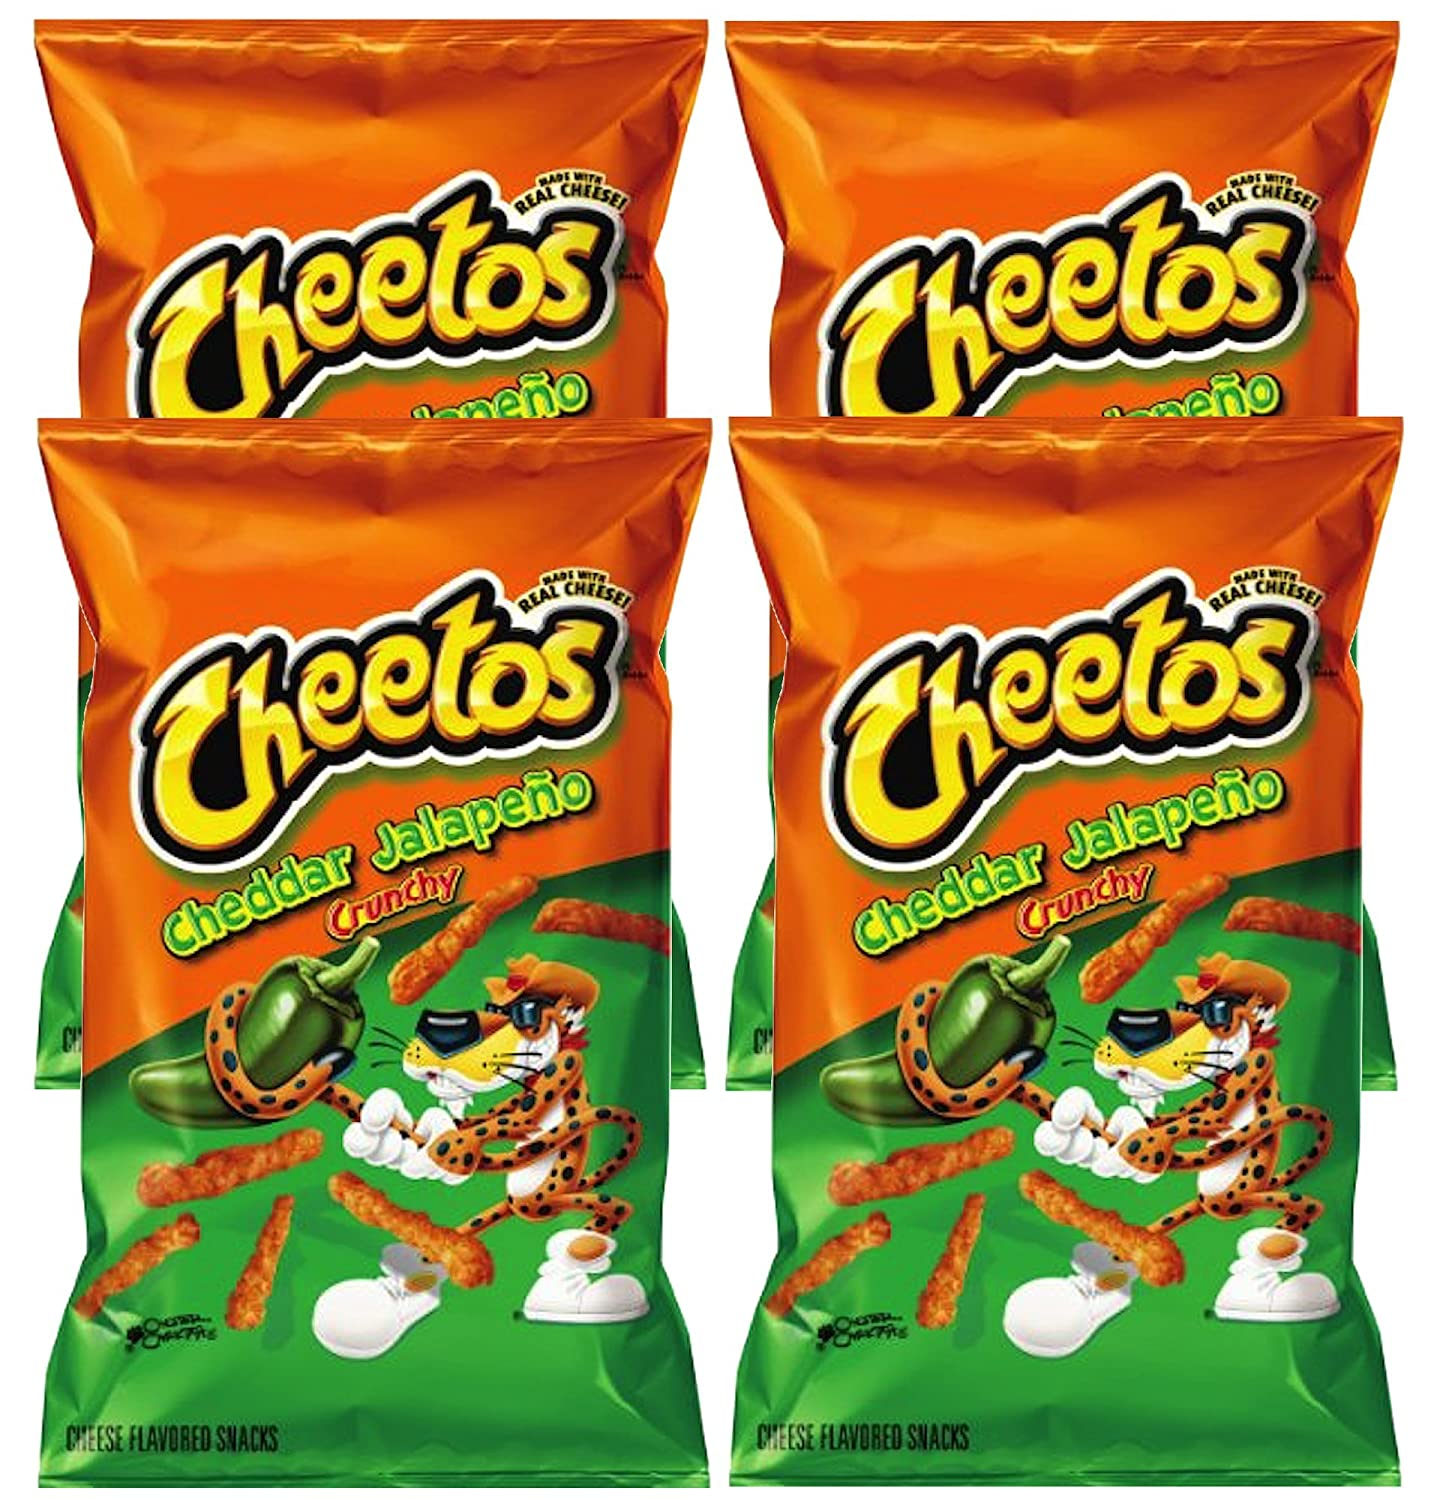 Cheetos Cheddar Jalapeño Crunchy Cheese Flavored Party Snacks Net Wt 8.5 Oz (pack of 4)